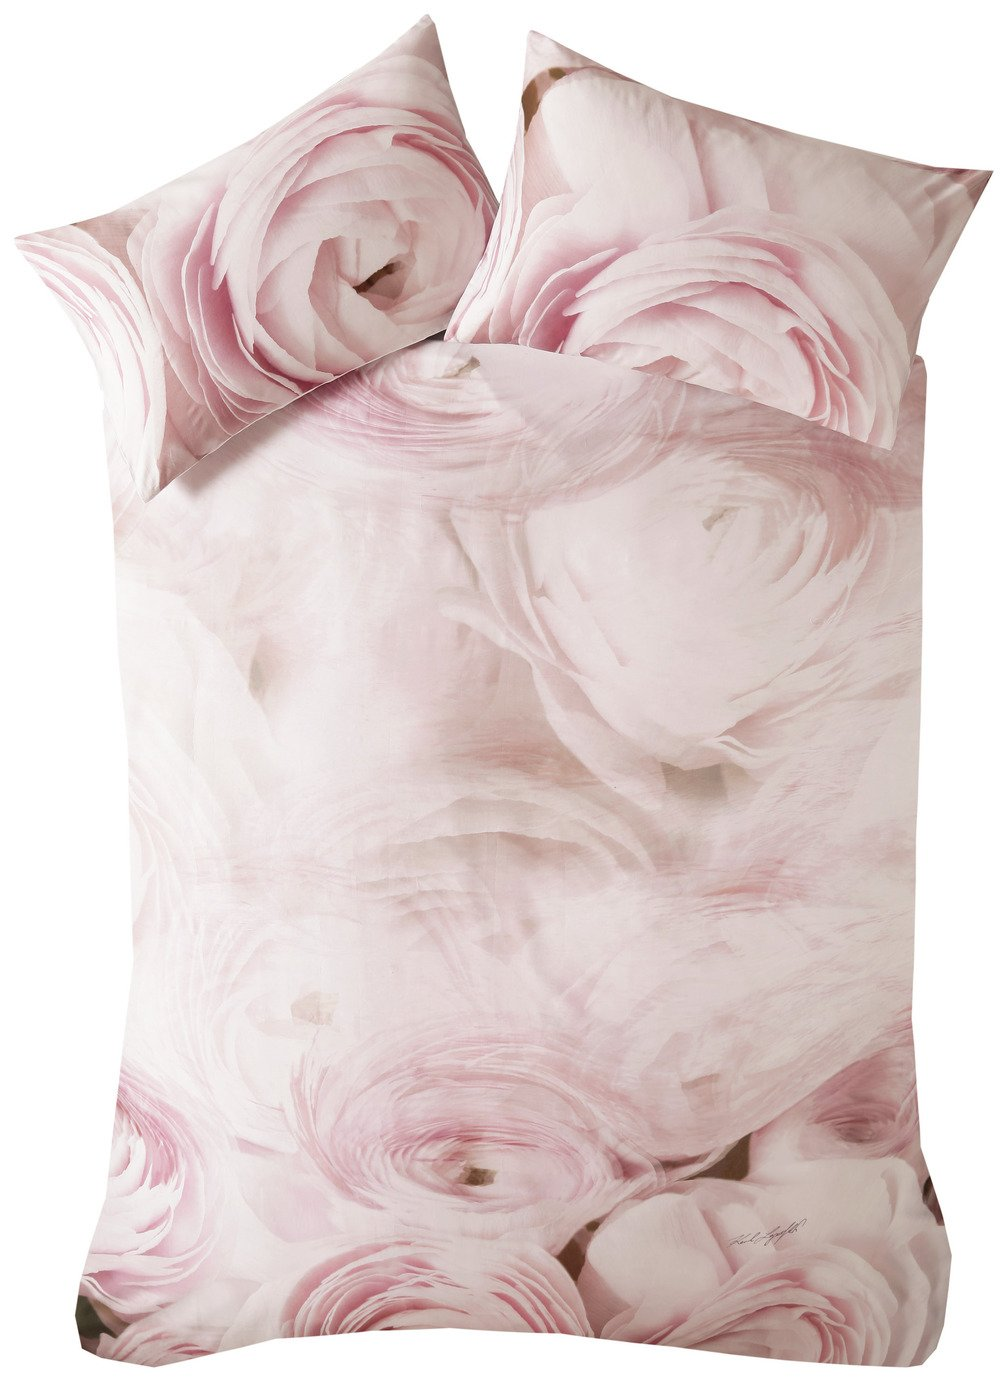 Karl Lagerfeld Rana Rose Pink Bedding Set - Kingsize